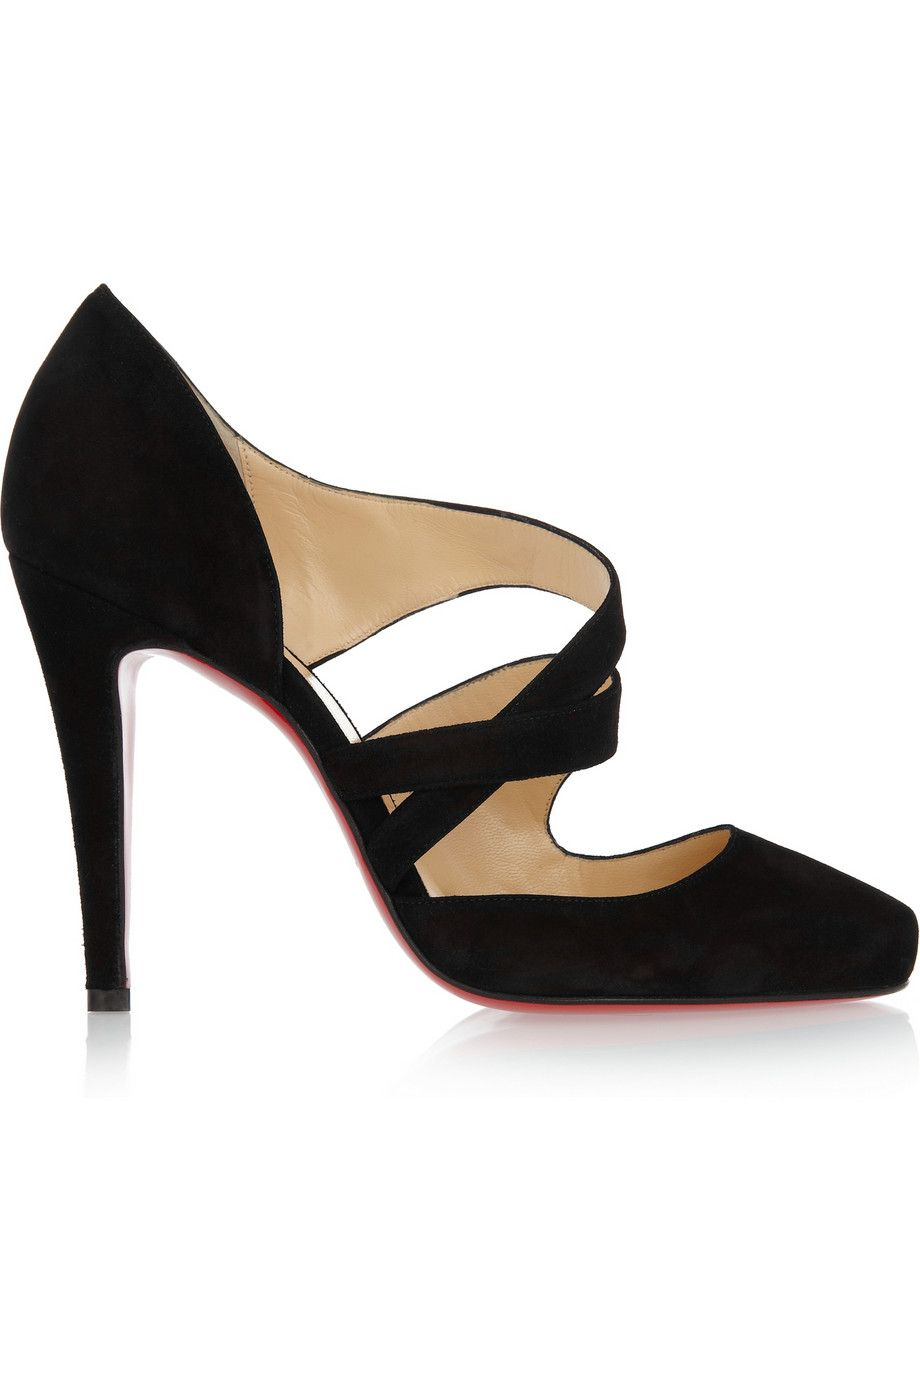 9bddc8849367 Christian Louboutin Black Suede Pumps fit for a winning woman - classy